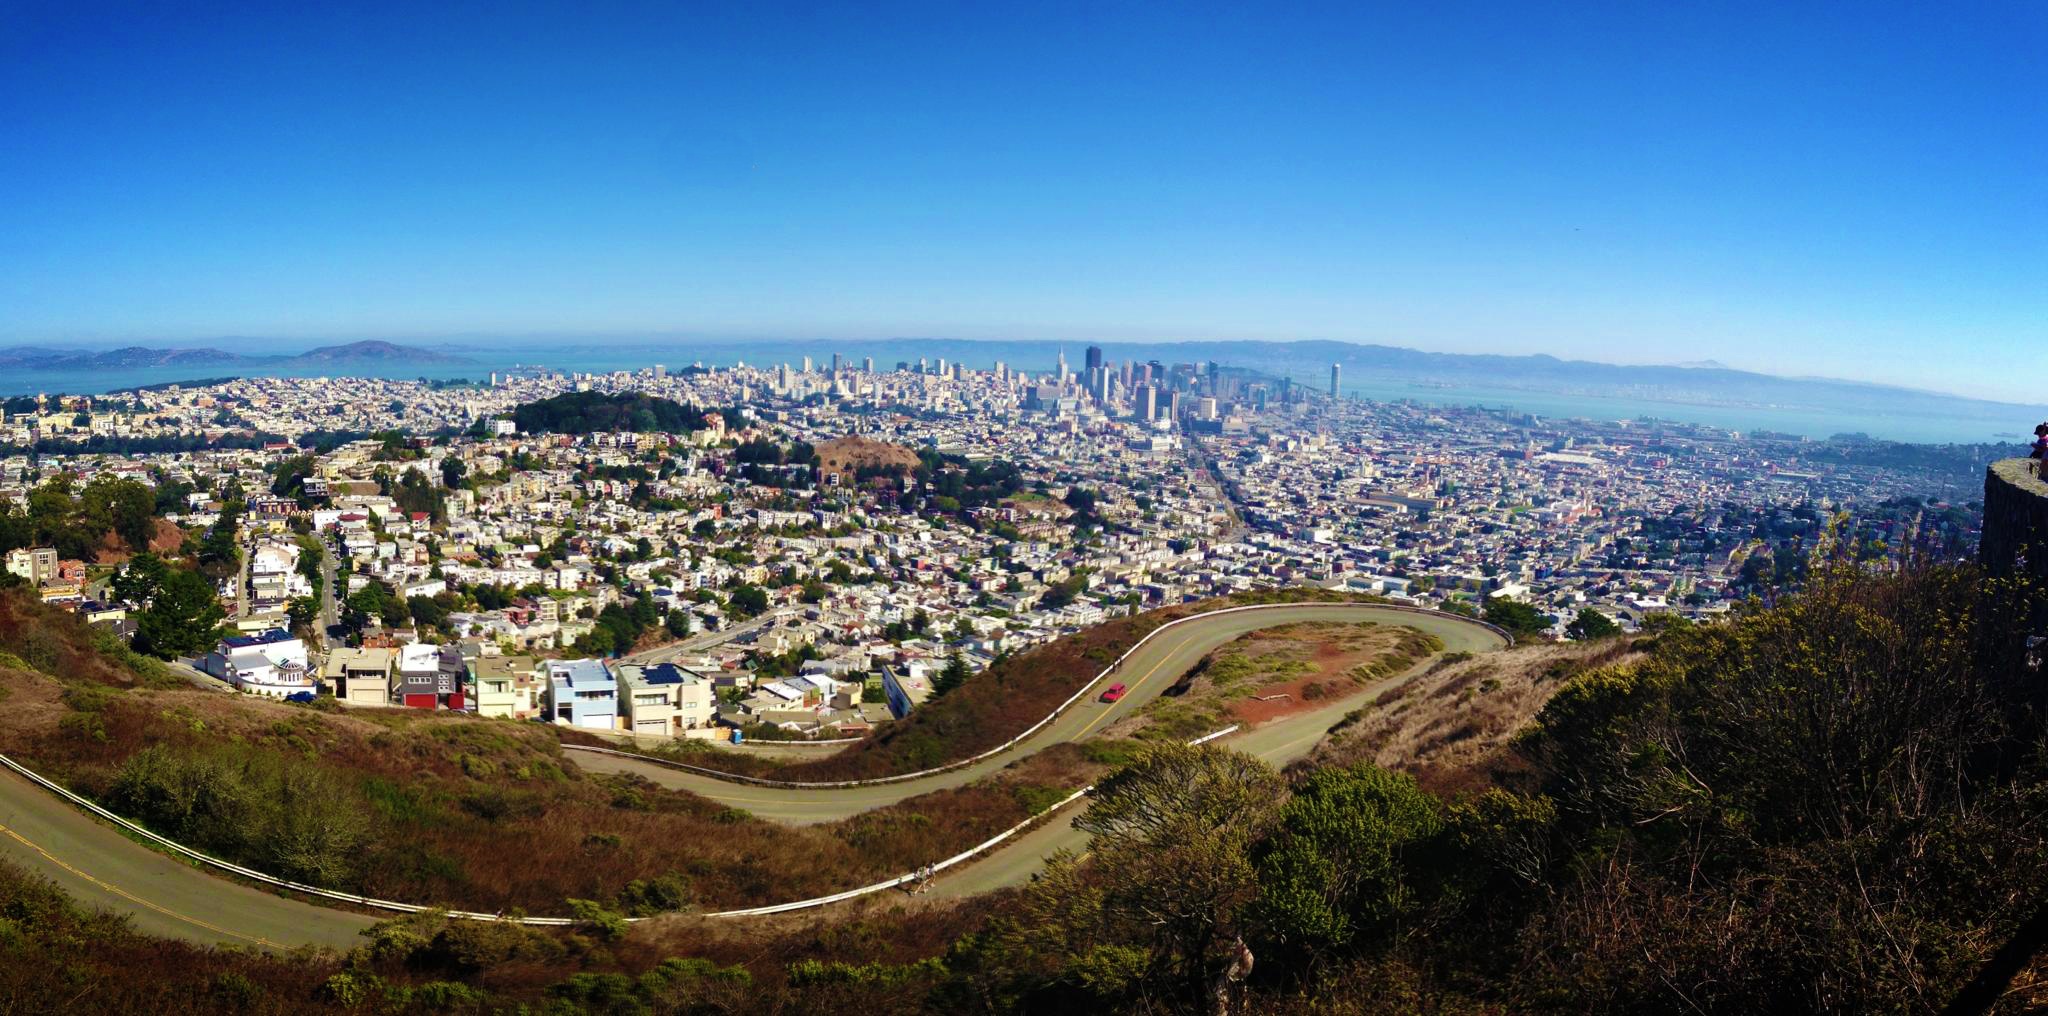 79a45 View of San Francisco from the top of the Twin Peaks Immigration keeps SF population growing even as locals depart